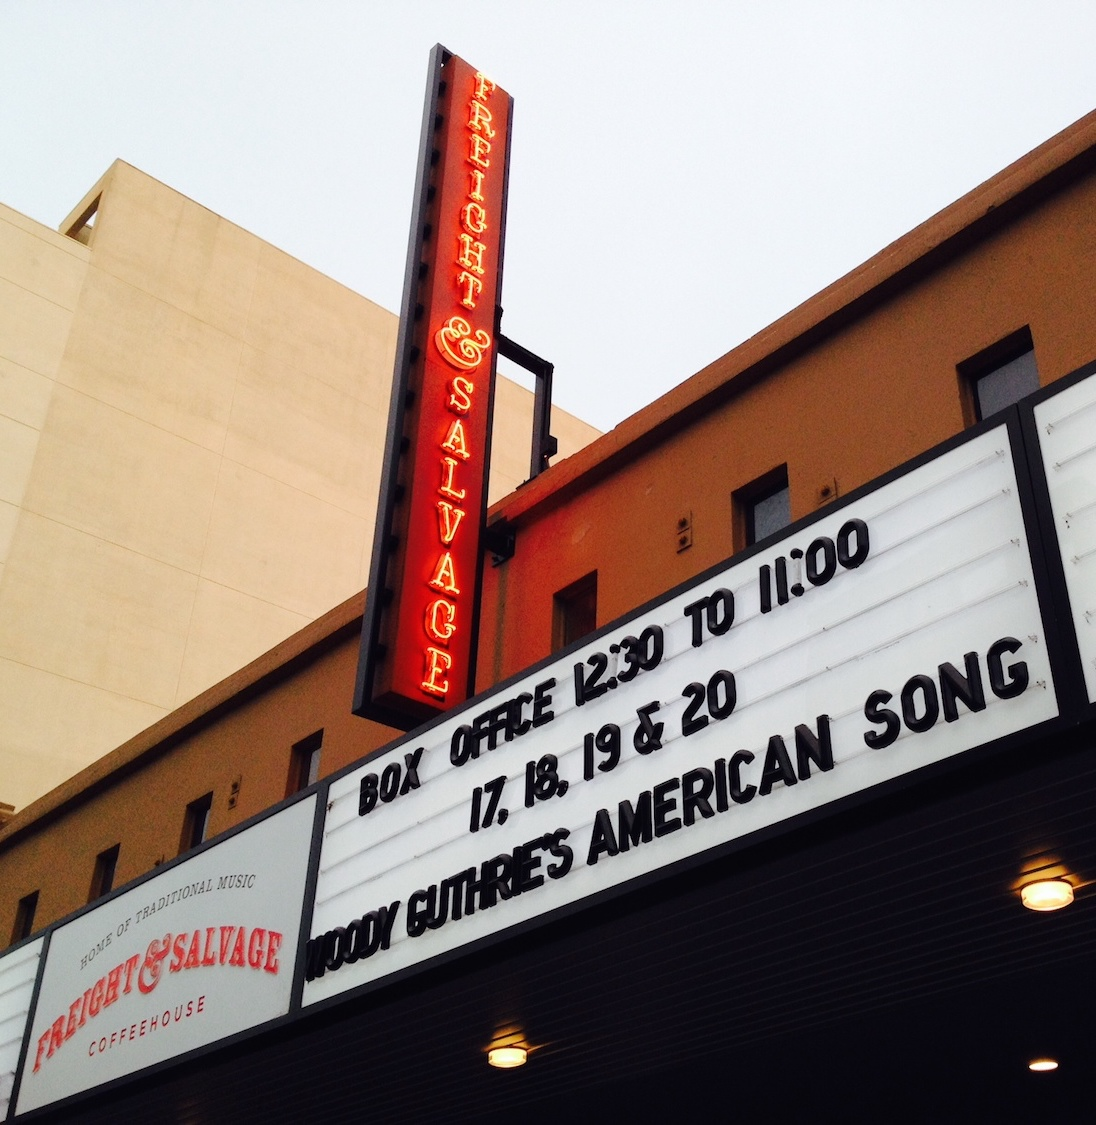 Freight & Salvage Coffeehouse Marquee, Berkeley, CA (2014)